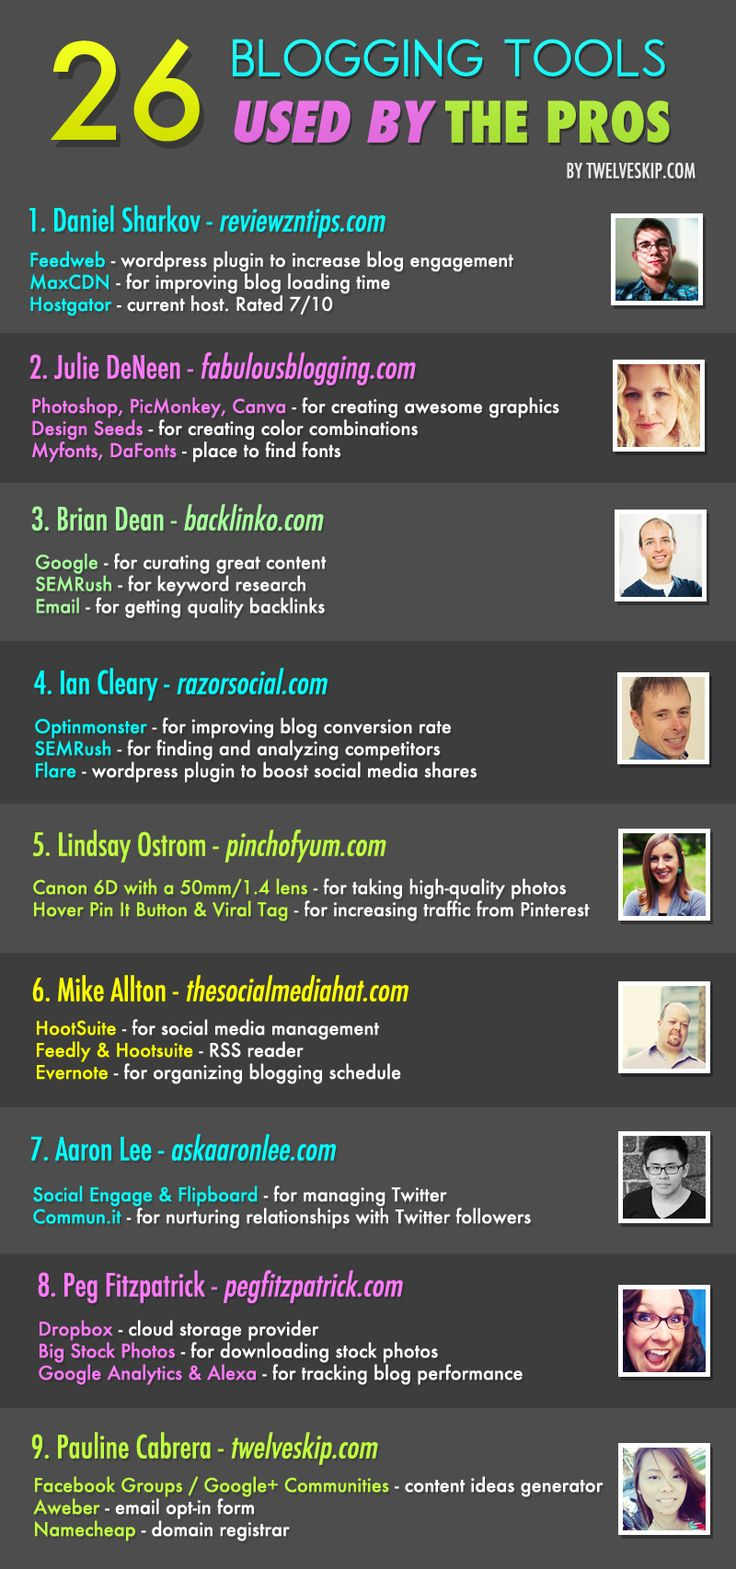 Blogging Tools Loved By The Pros #blogging